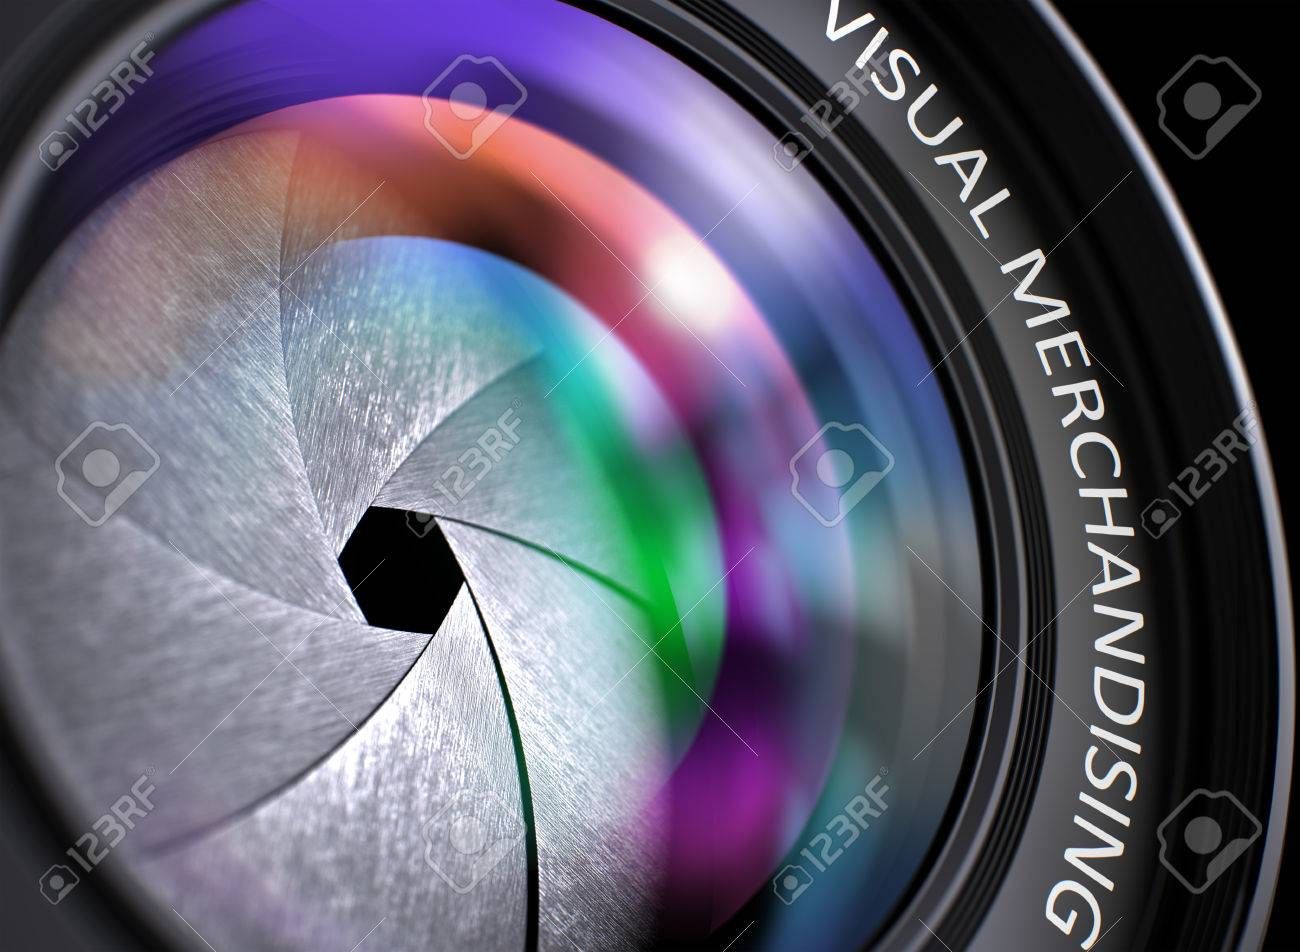 Closeup View. Camera Lens with Visual Merchandising Inscription. Colorful Lens Flares on Front Glass. 3D Render. Standard-Bild - 54368618